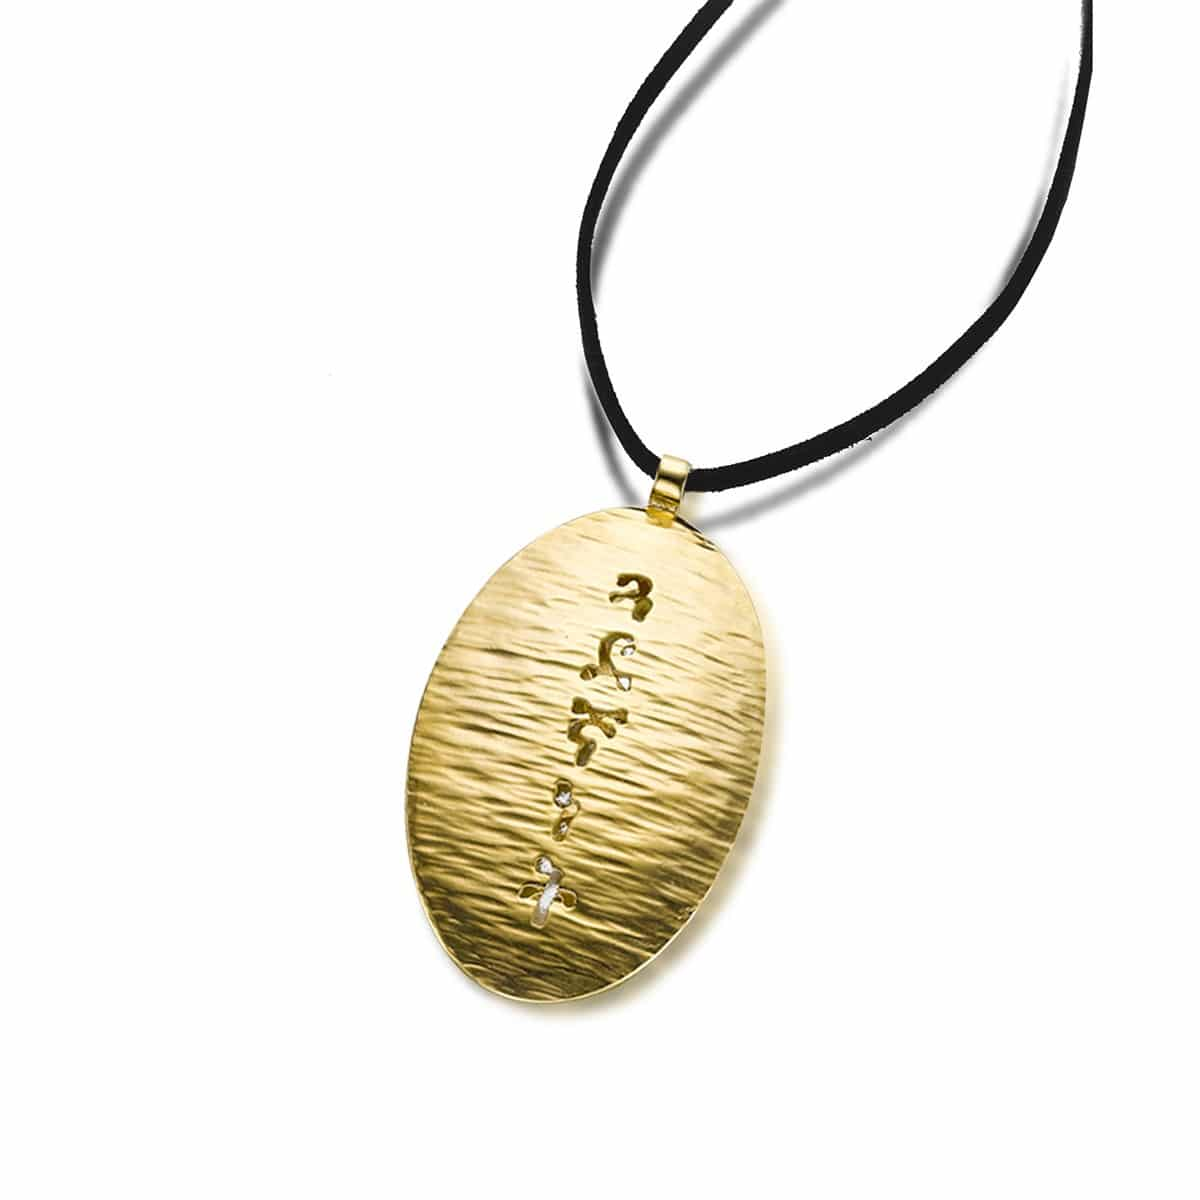 Gold plated pendant on a suede cord